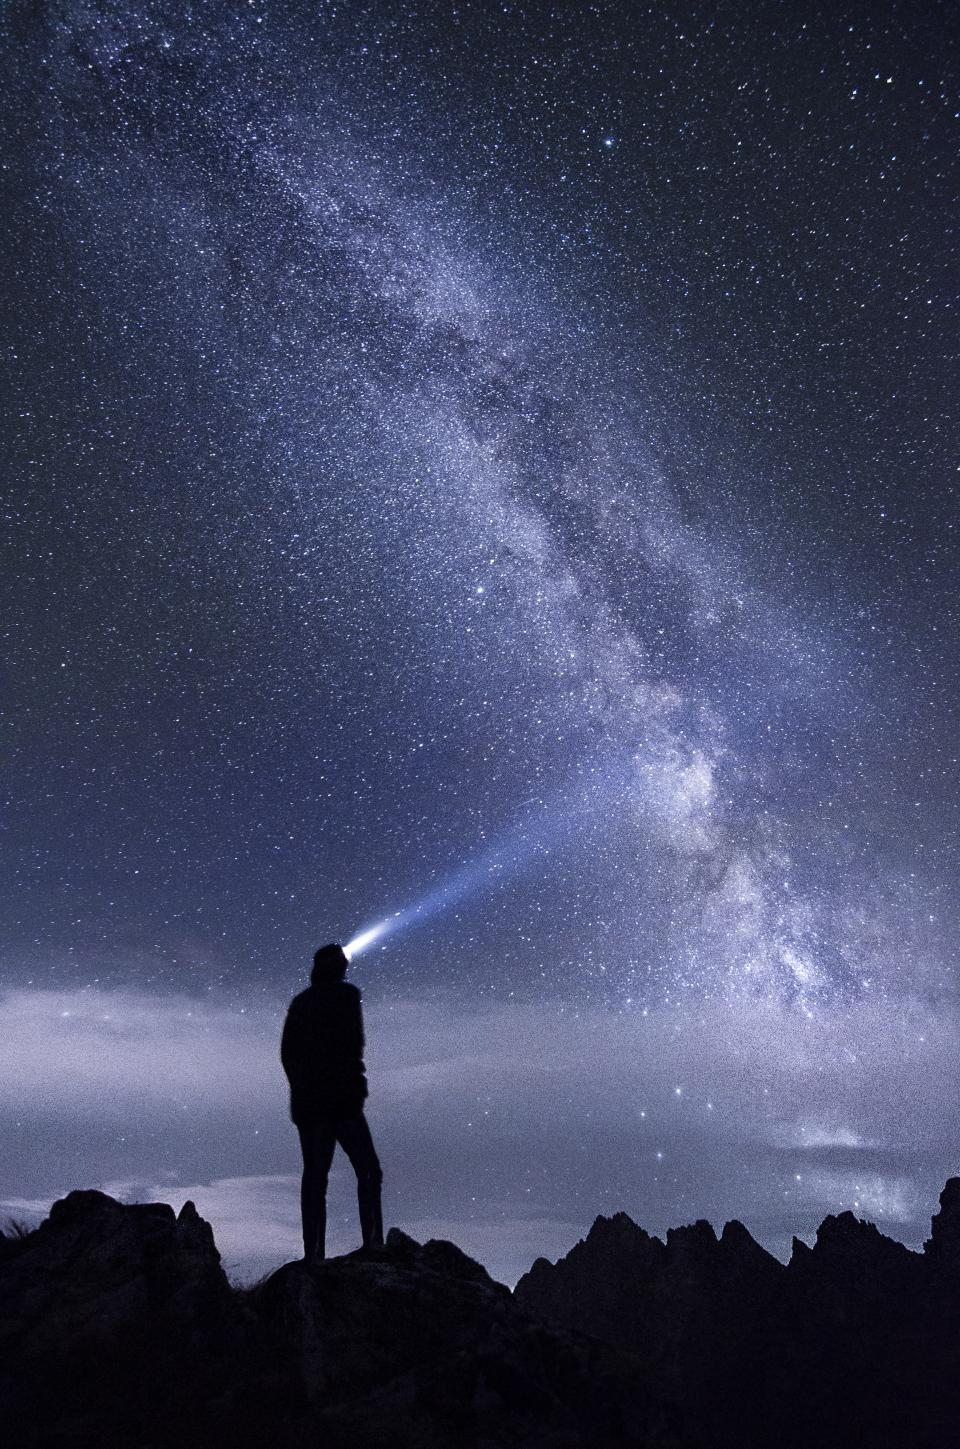 guy, man, male, people, back, contemplate, headlamp, mountains, travel, trek, hike, climb, galaxy, stars, constellation, night, sky, summit, peaks, clouds, outdoors, nature